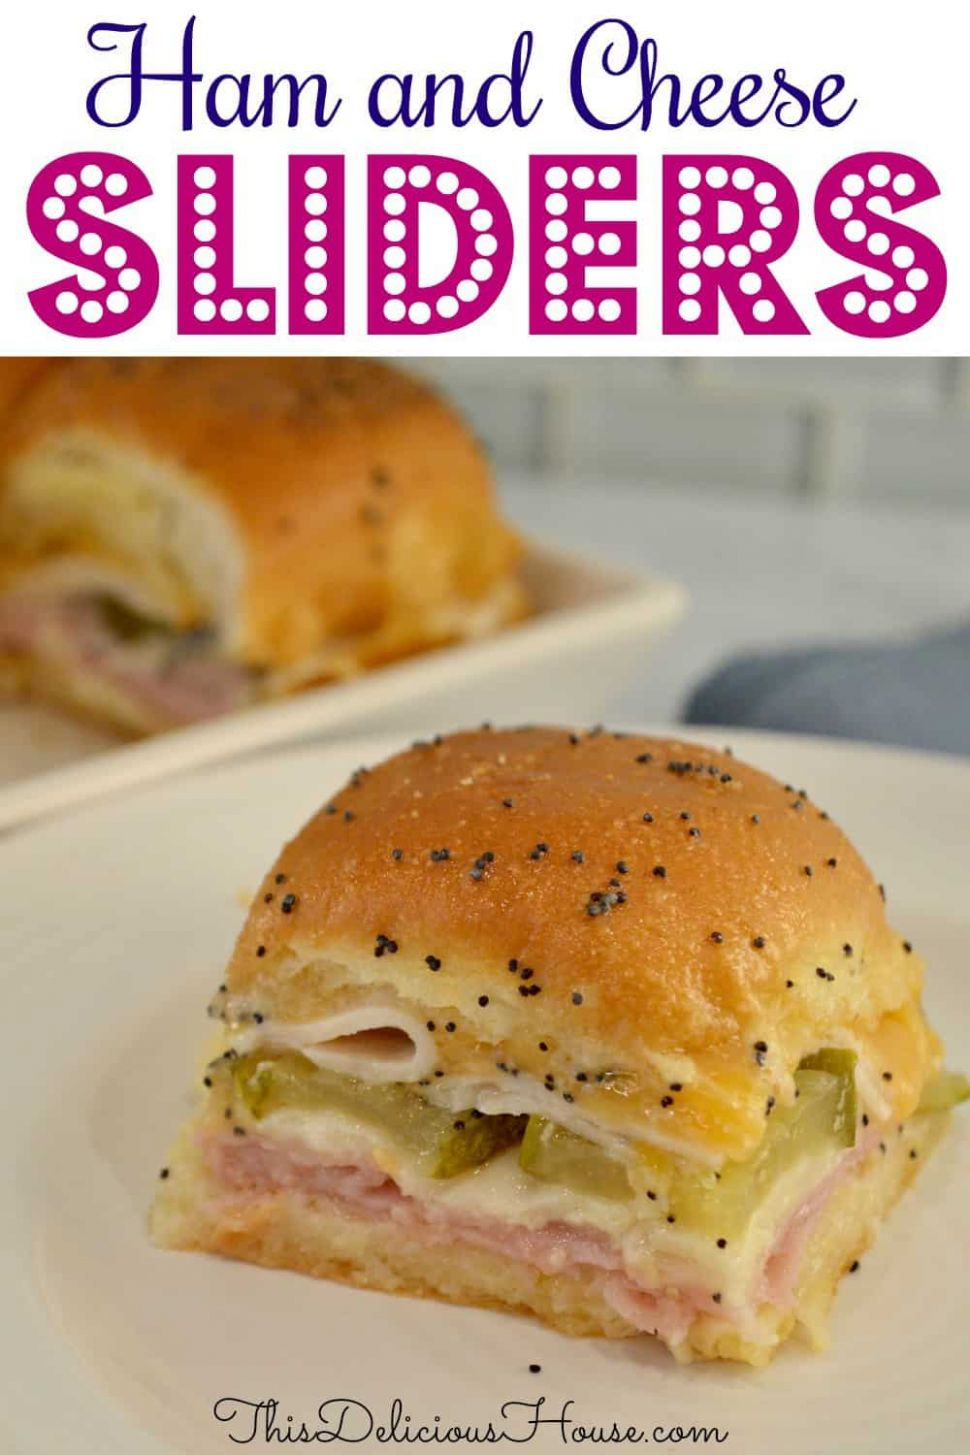 Ham and Cheese Sliders | King's Hawaiian Rolls - This Delicious House